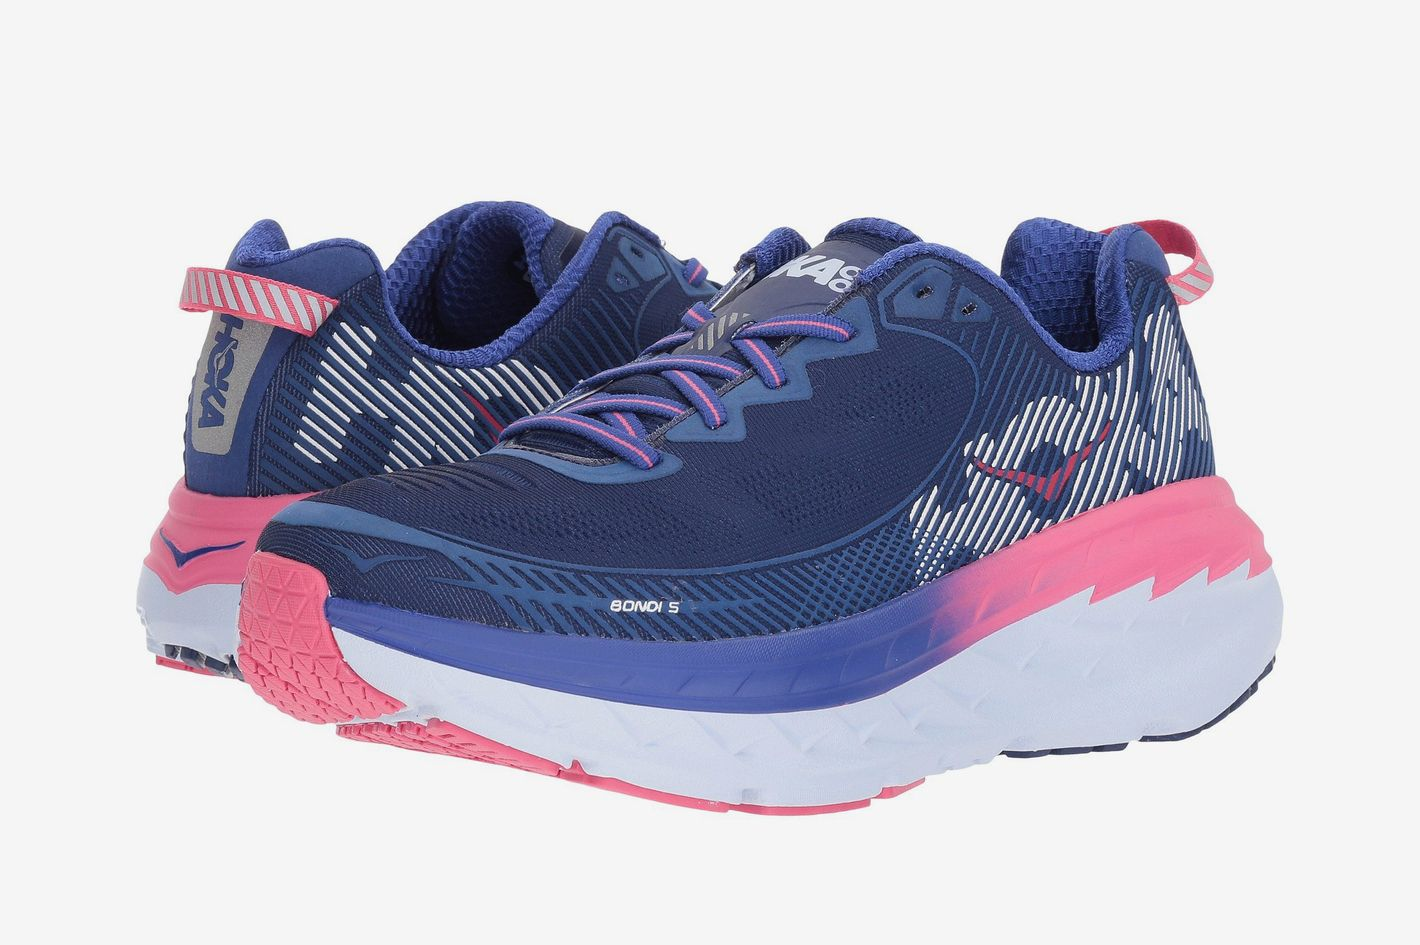 9394985d36 The Ugly Sneaker Running Shoe. Hoka One One Bondi 5